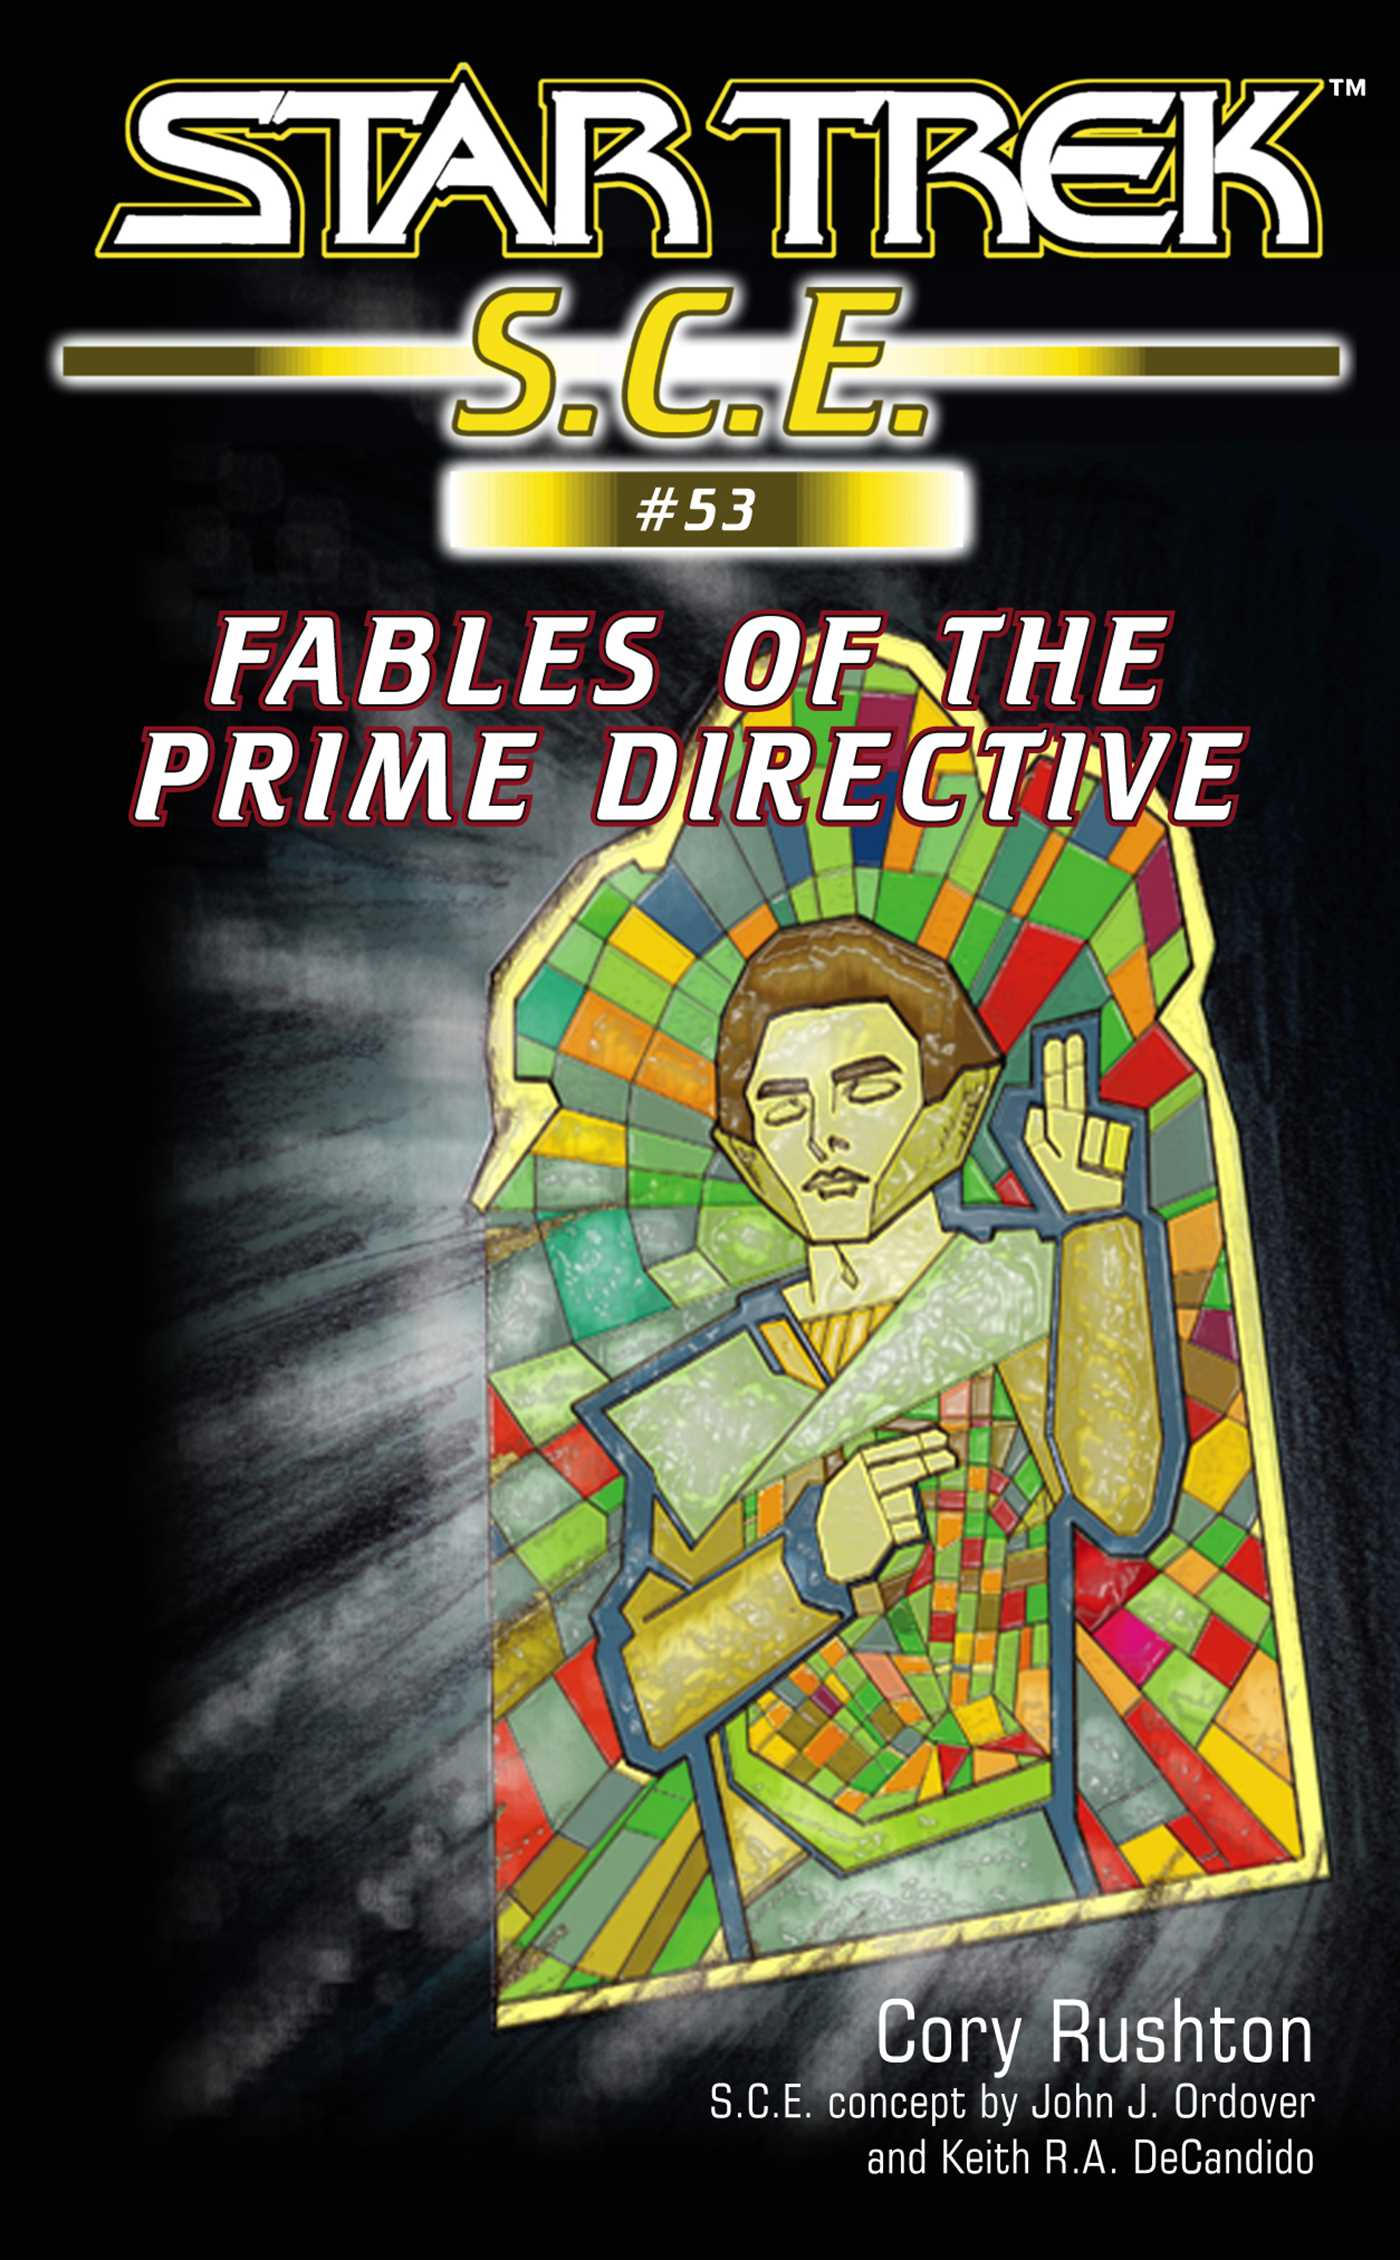 Star trek fables of the prime directive 9780743496834 hr